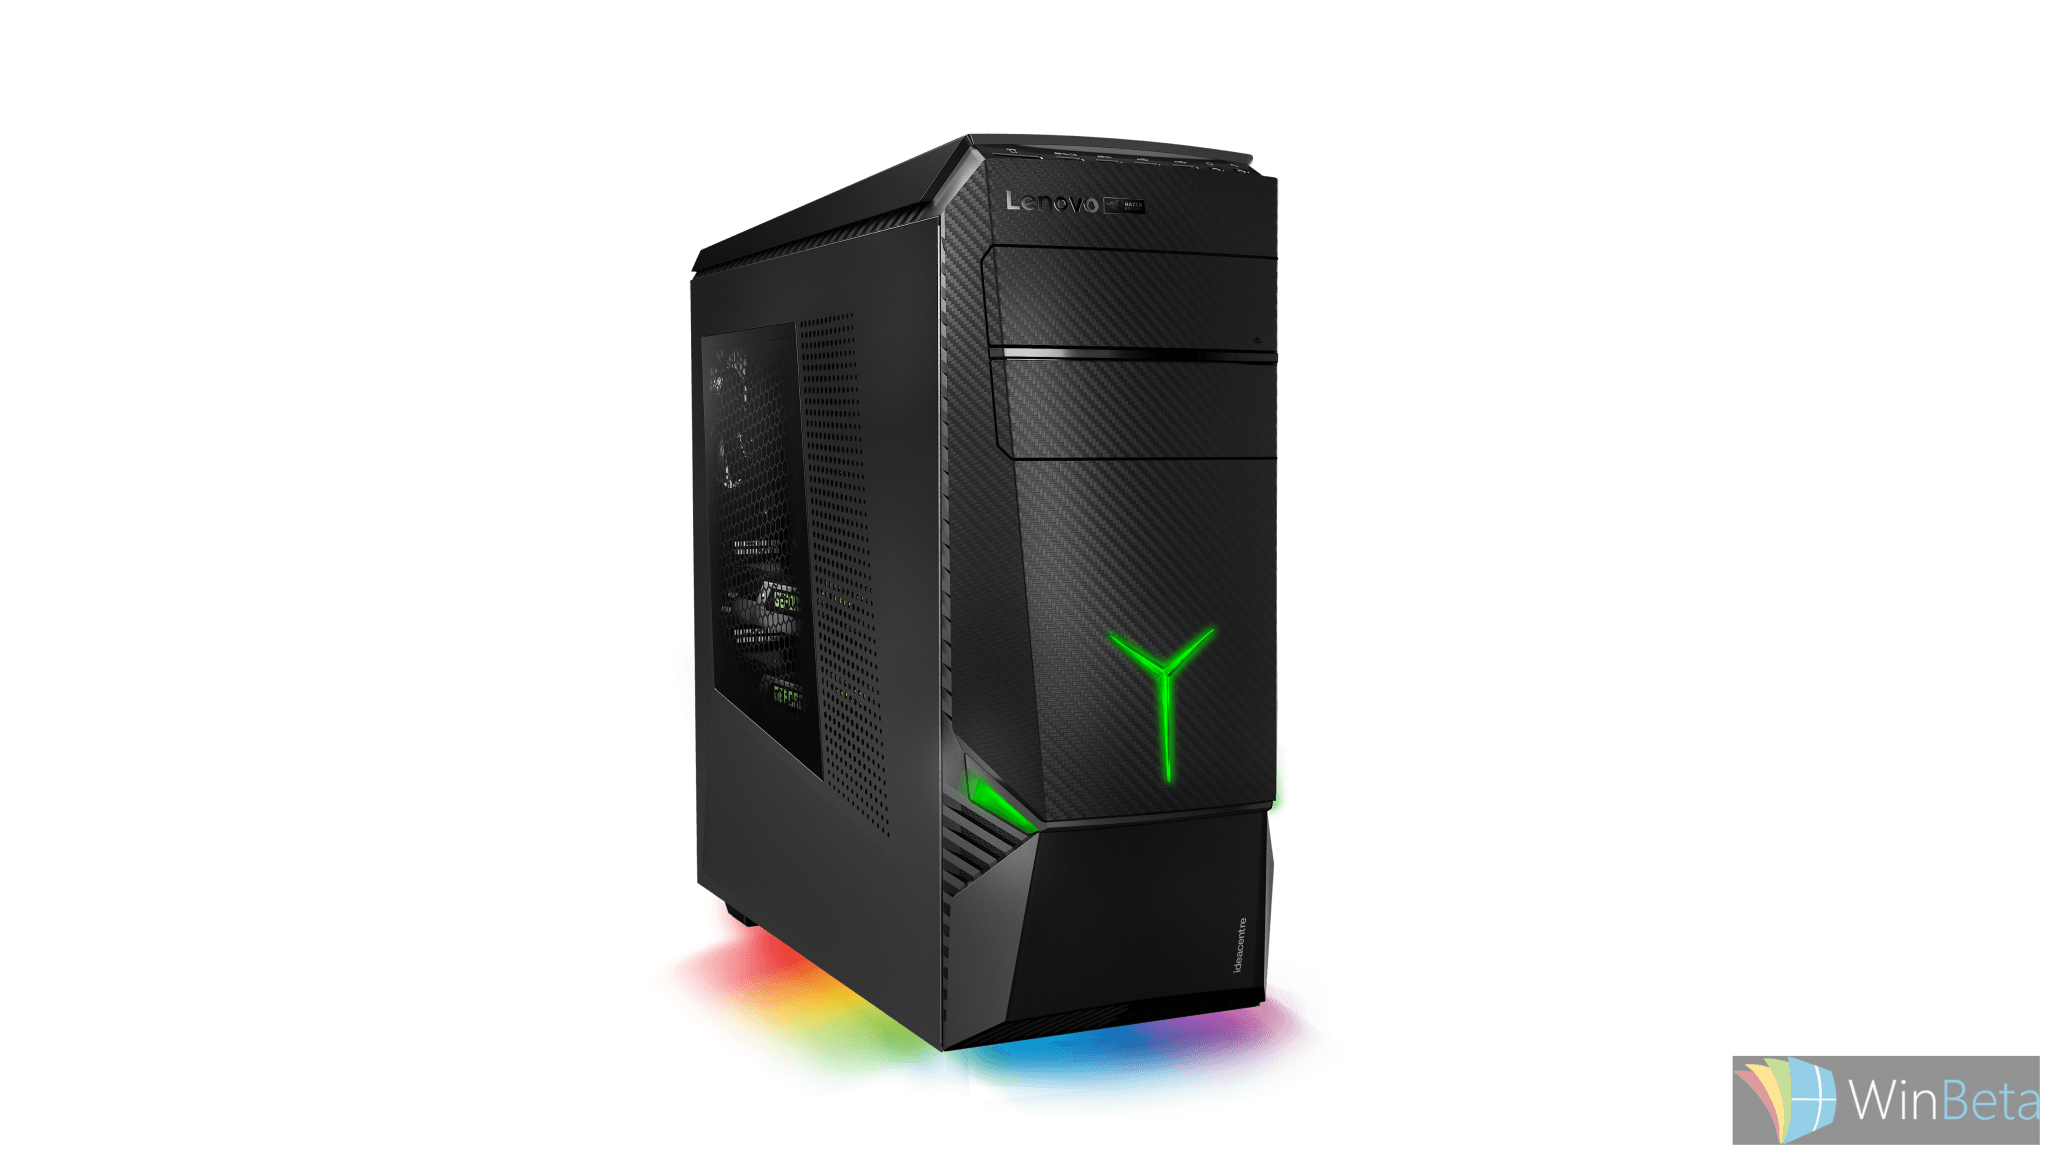 Lenovo-Y-Series-Razer-Edition-Gaming-Desktop-Prototype_2